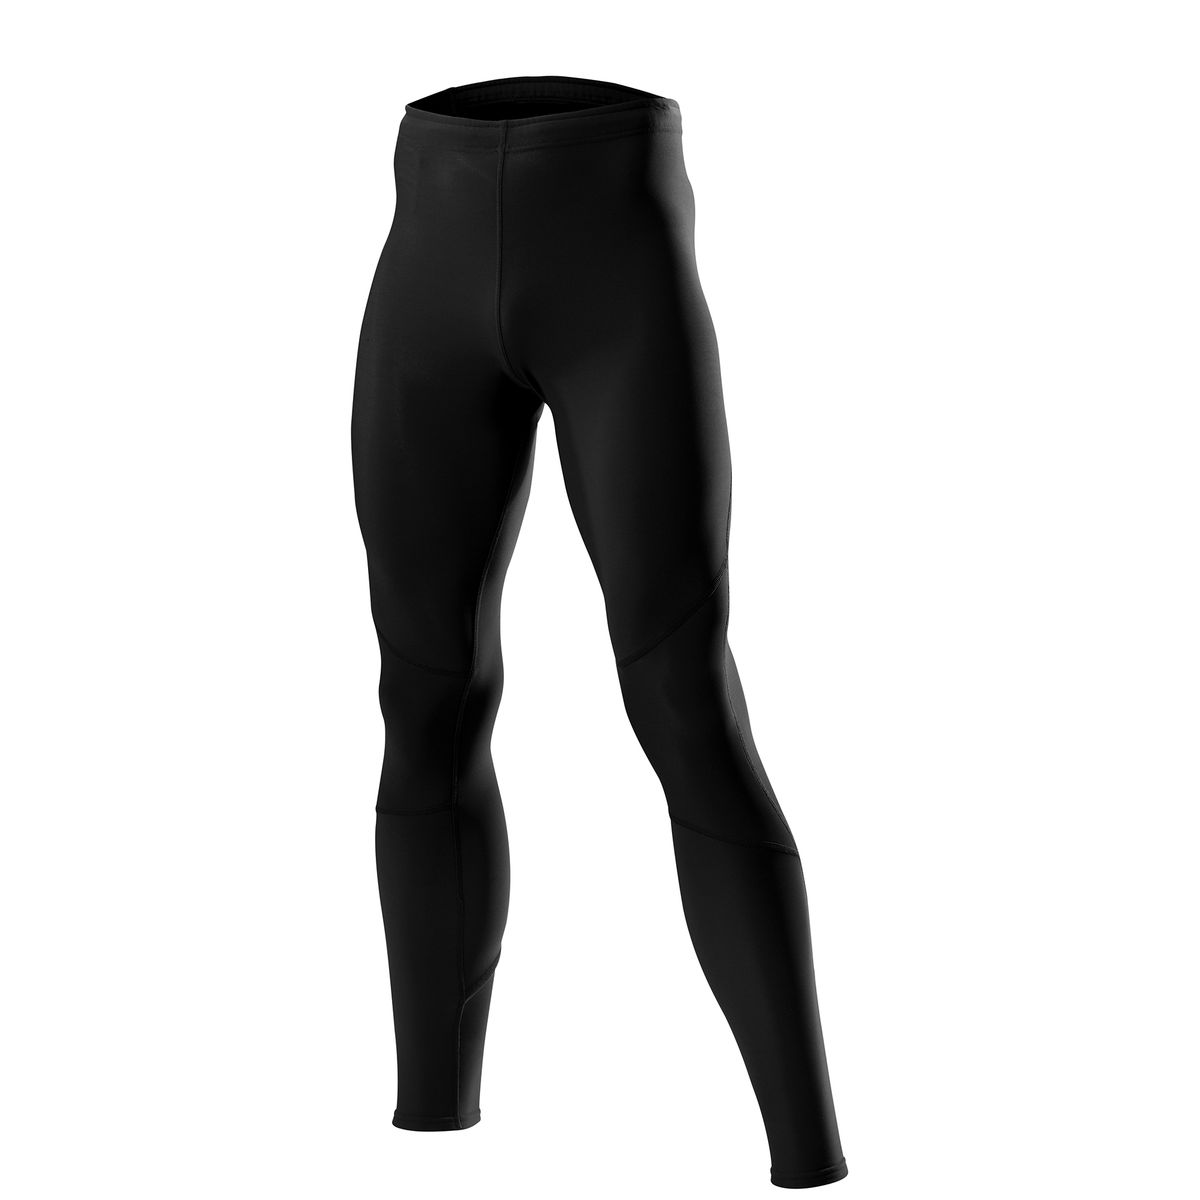 RUNNING TIGHTS LONG (MS) thermal tights